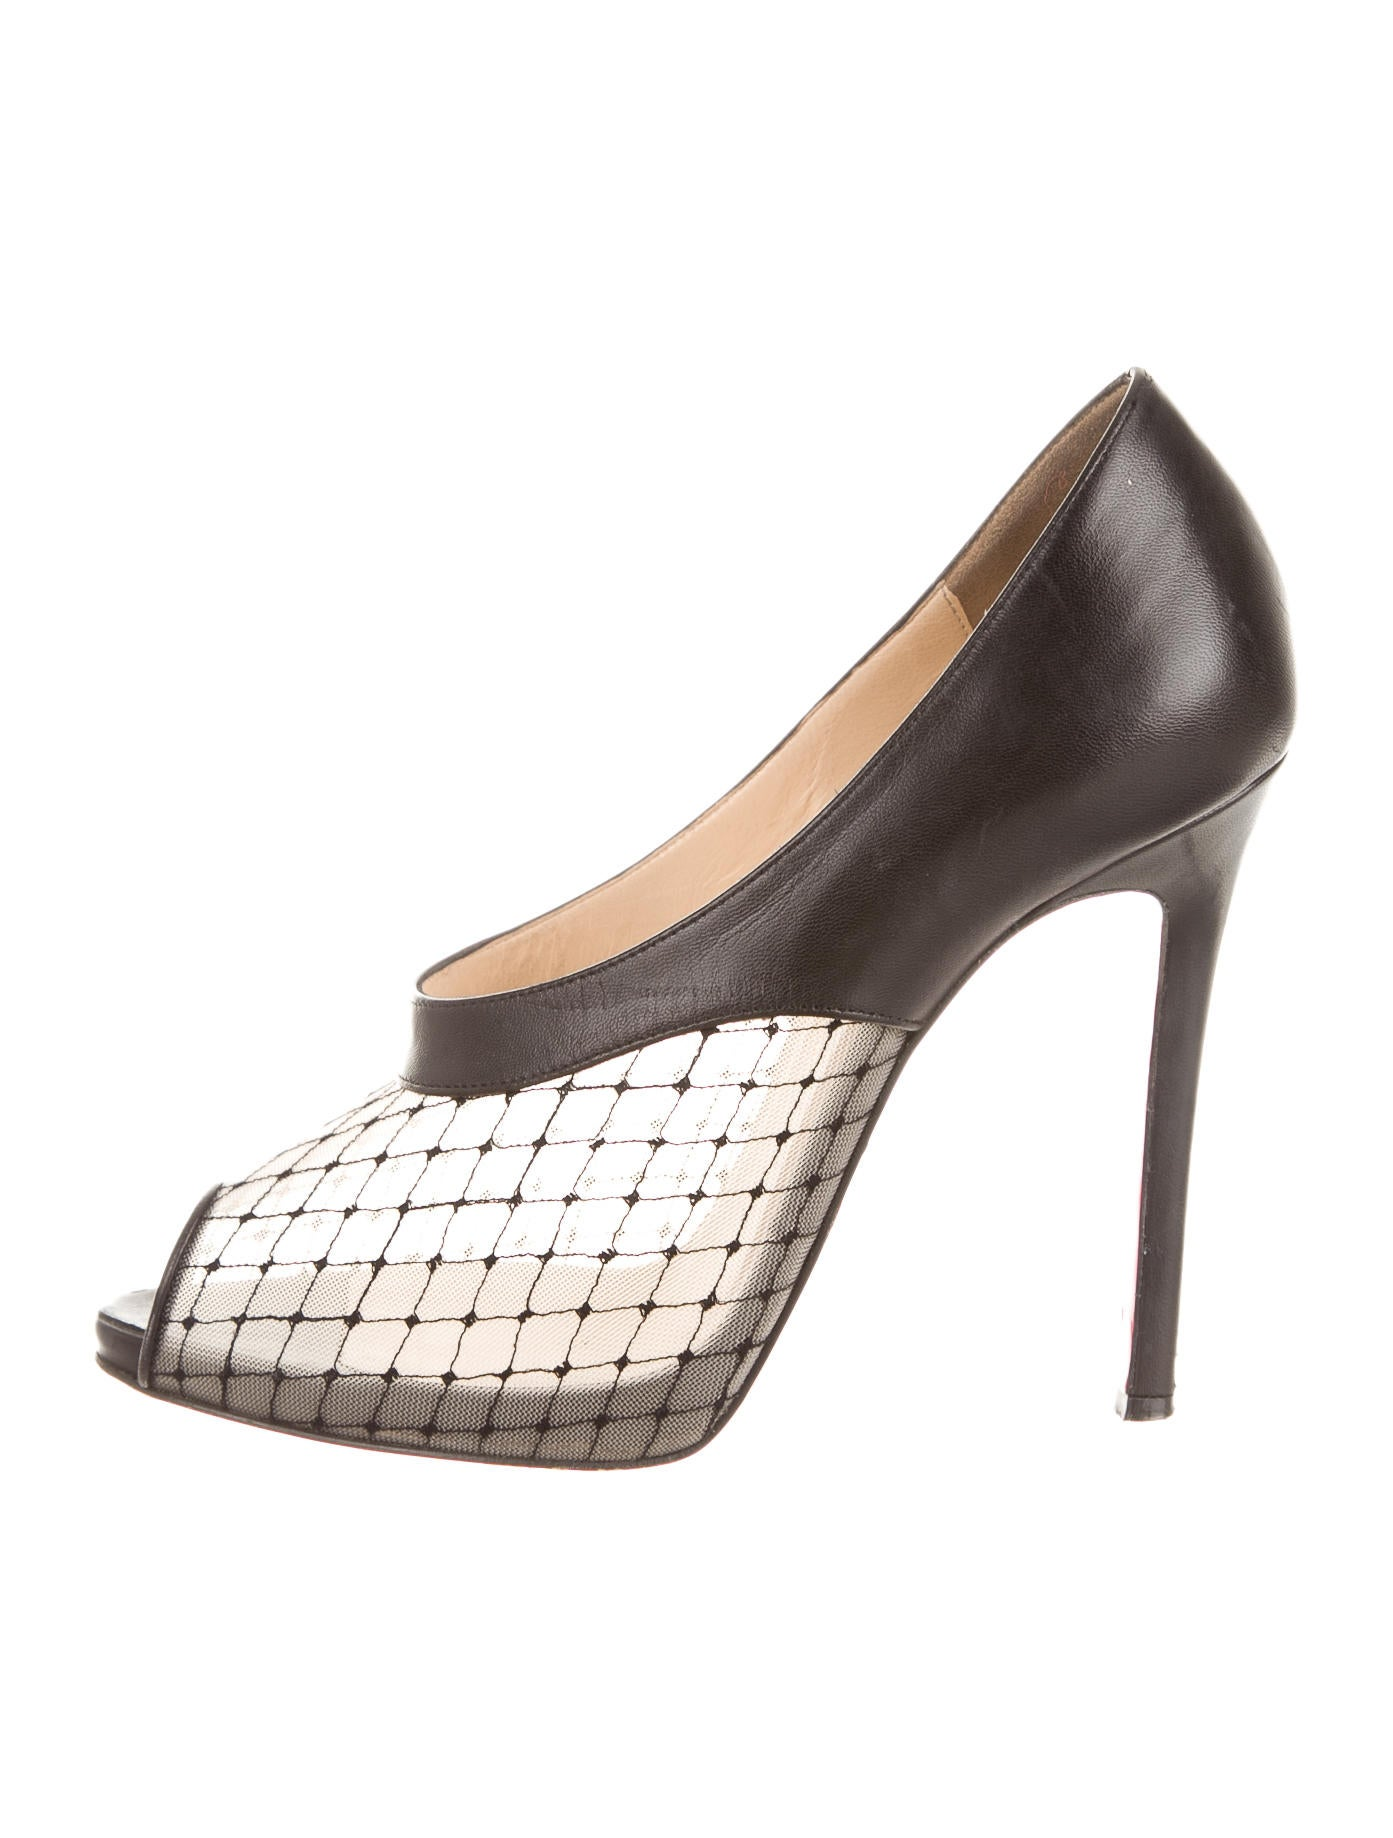 christian louboutin peep-toe booties Black leather mesh accent ...